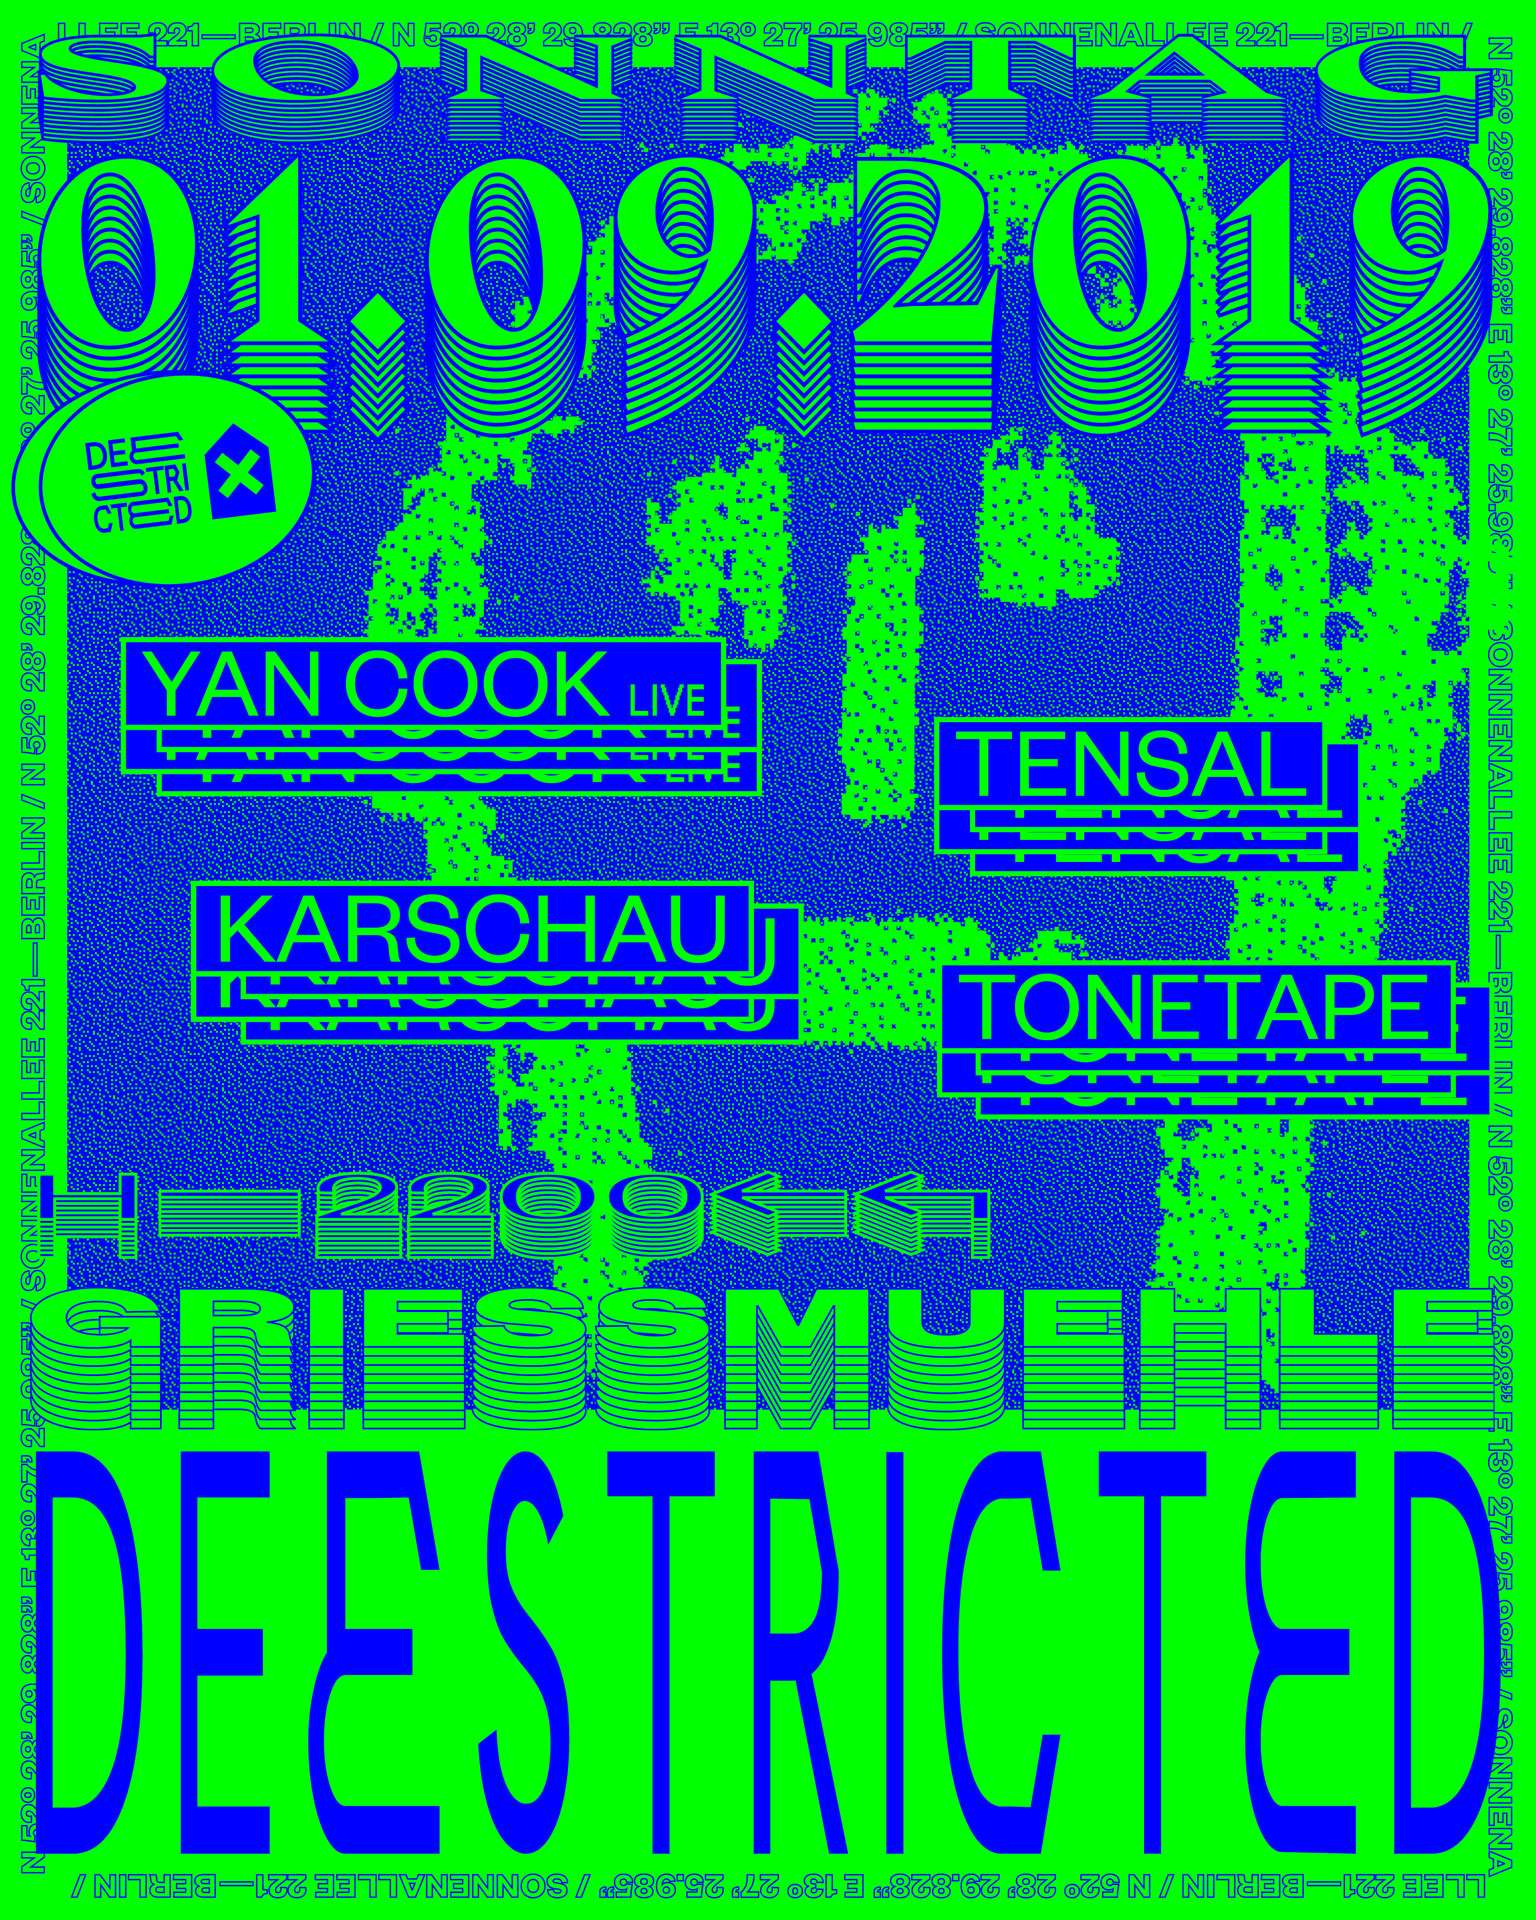 Deestricted with Yan Cook Tensal